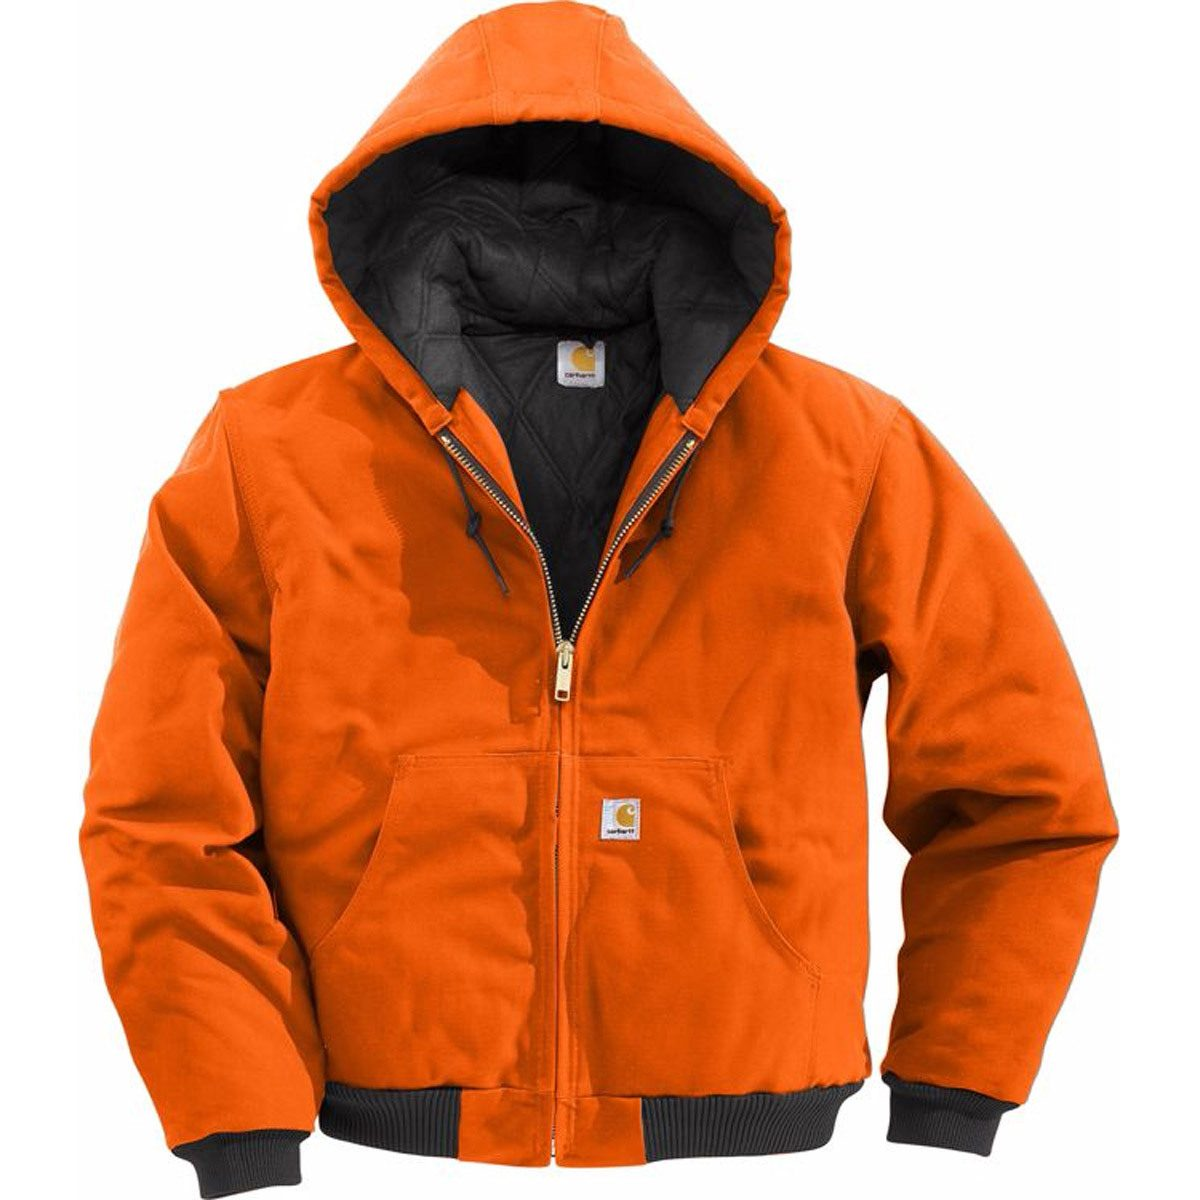 Work Jackets for Tougher Weather